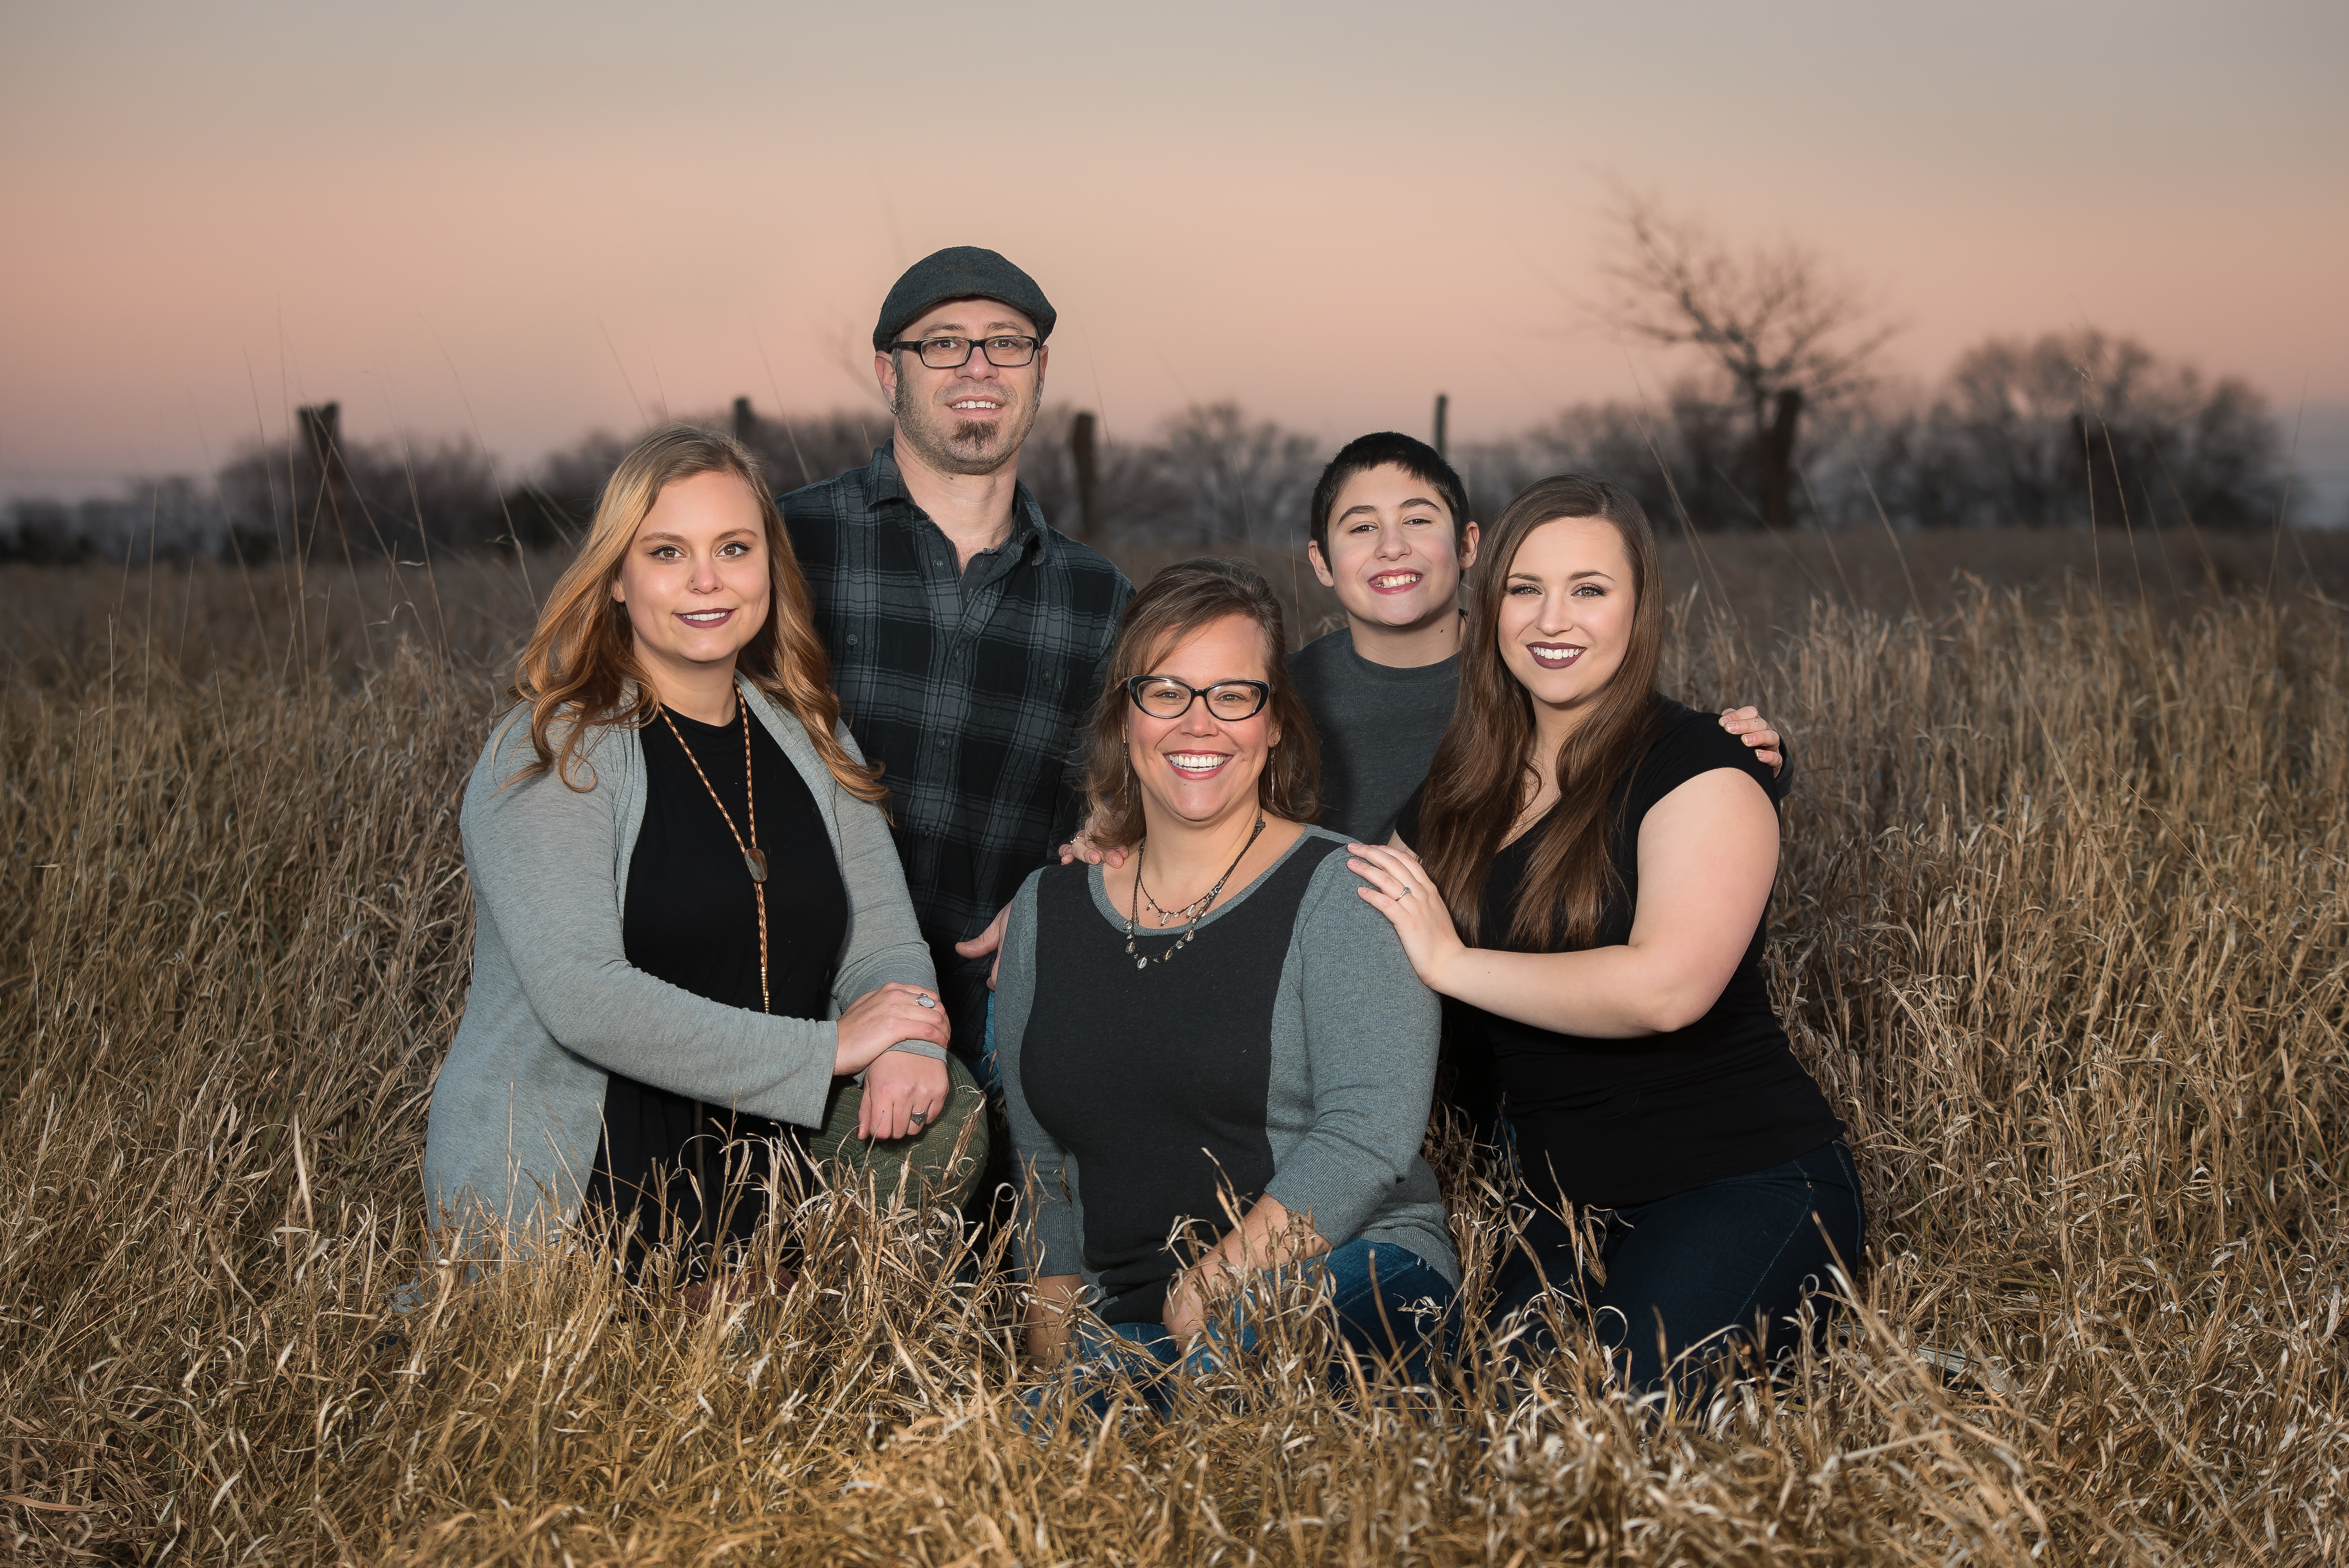 Full Family Photography Session - $350